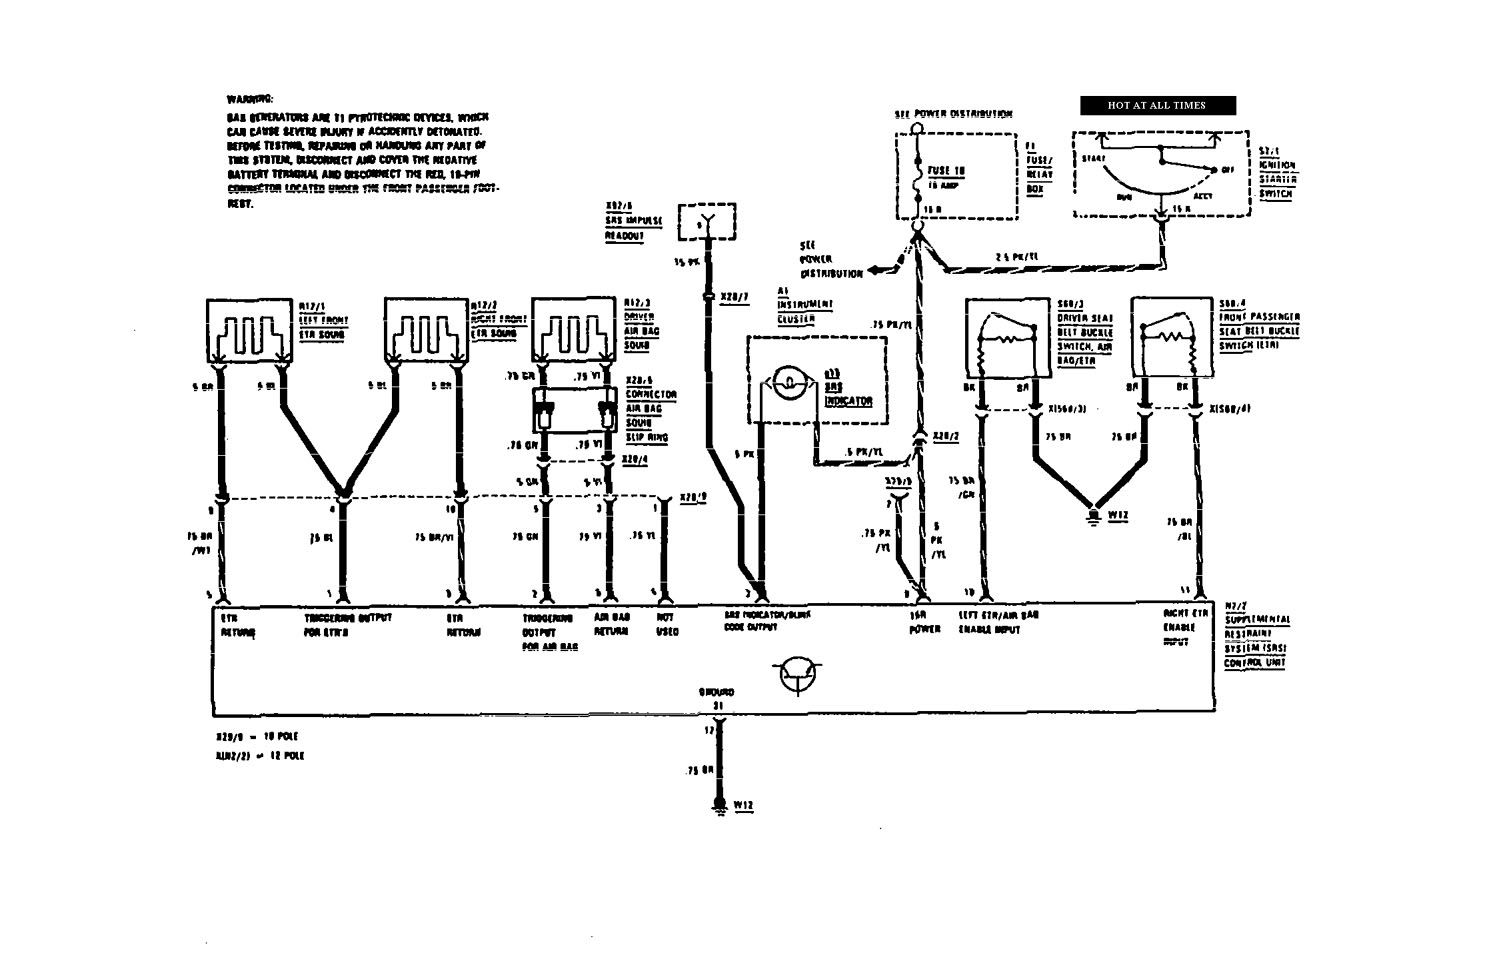 Daewoo Kalos Wiring Diagram - Wiring Diagrams List on